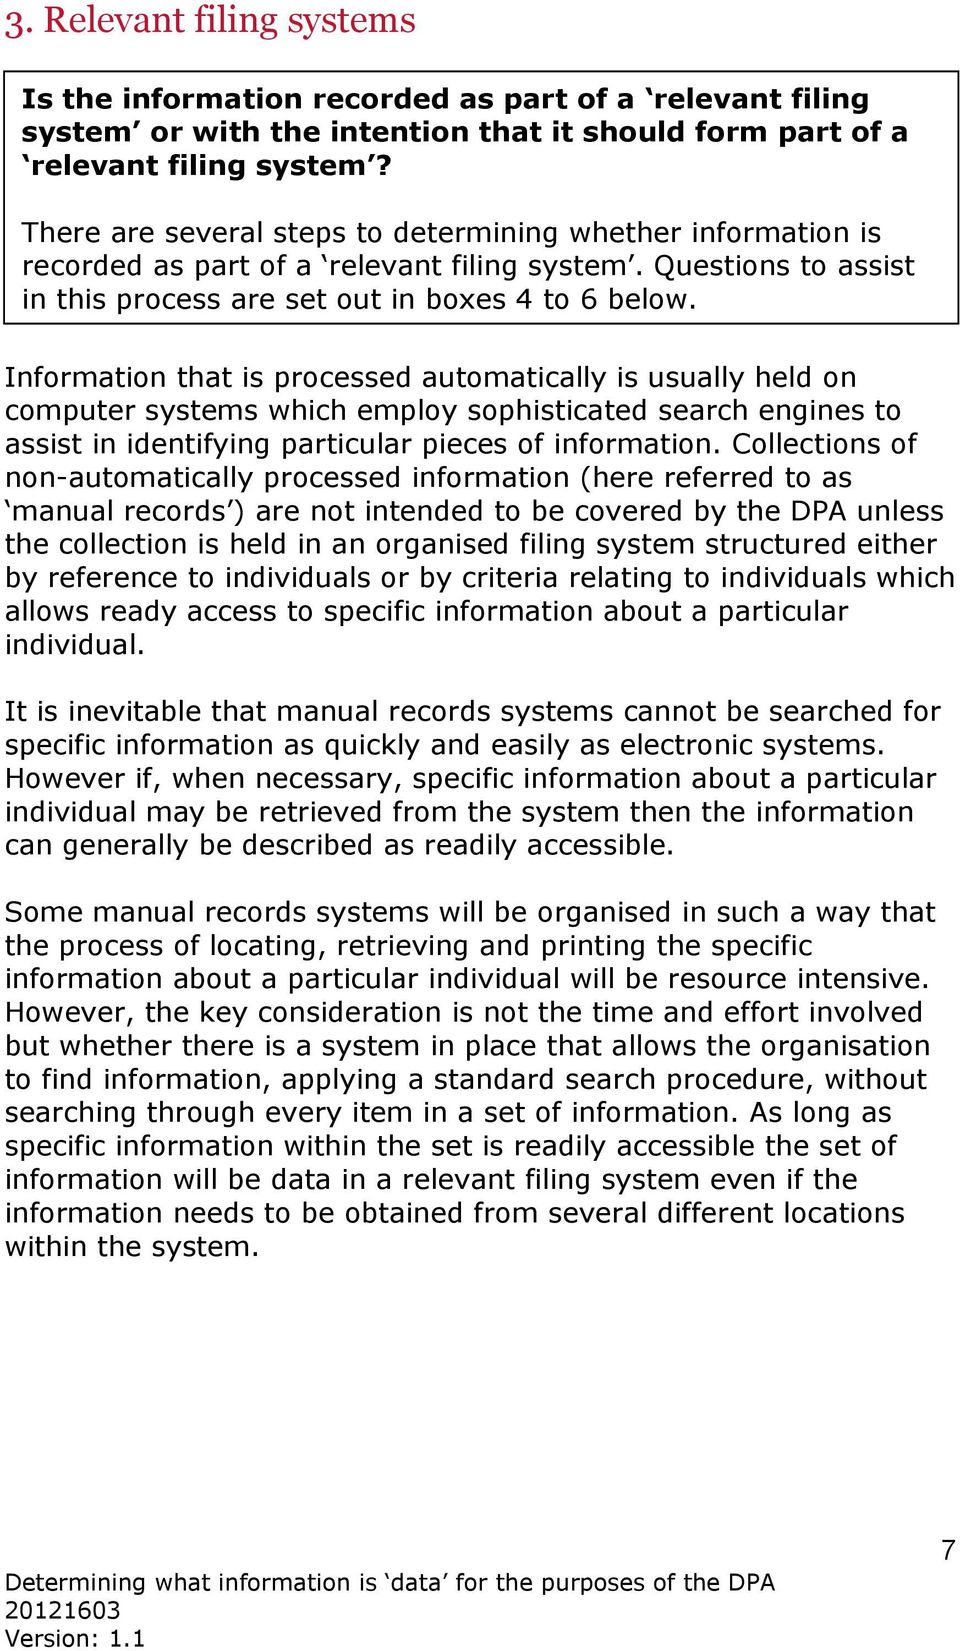 Information that is processed automatically is usually held on computer systems which employ sophisticated search engines to assist in identifying particular pieces of information.